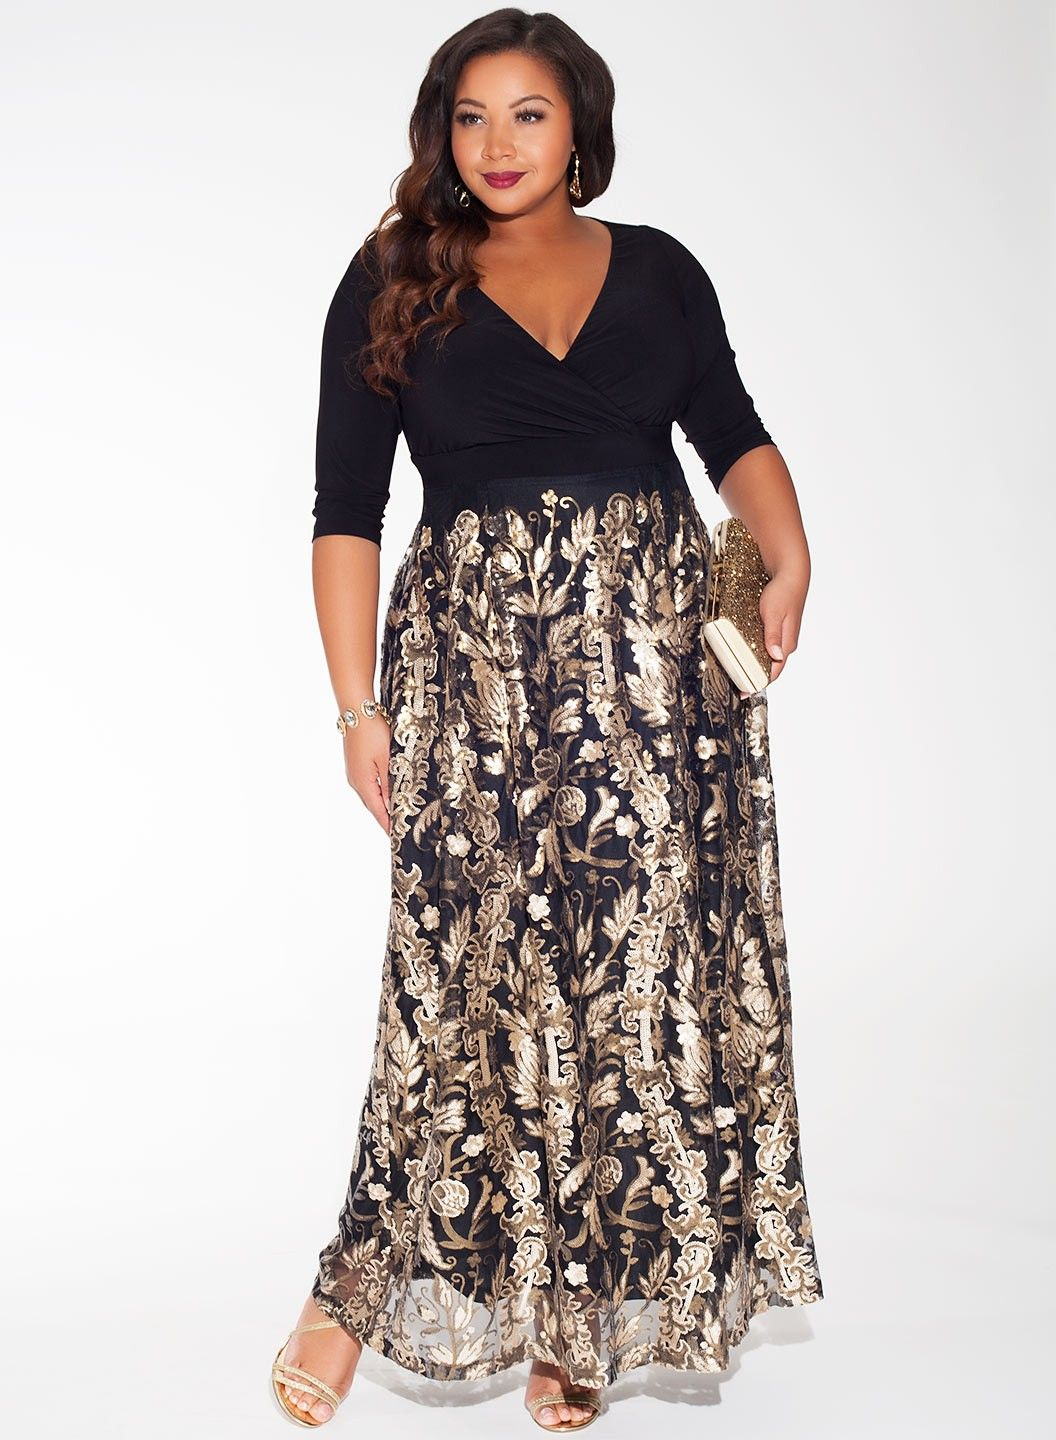 A luxe embellished floor sweeping length skirt combined with a